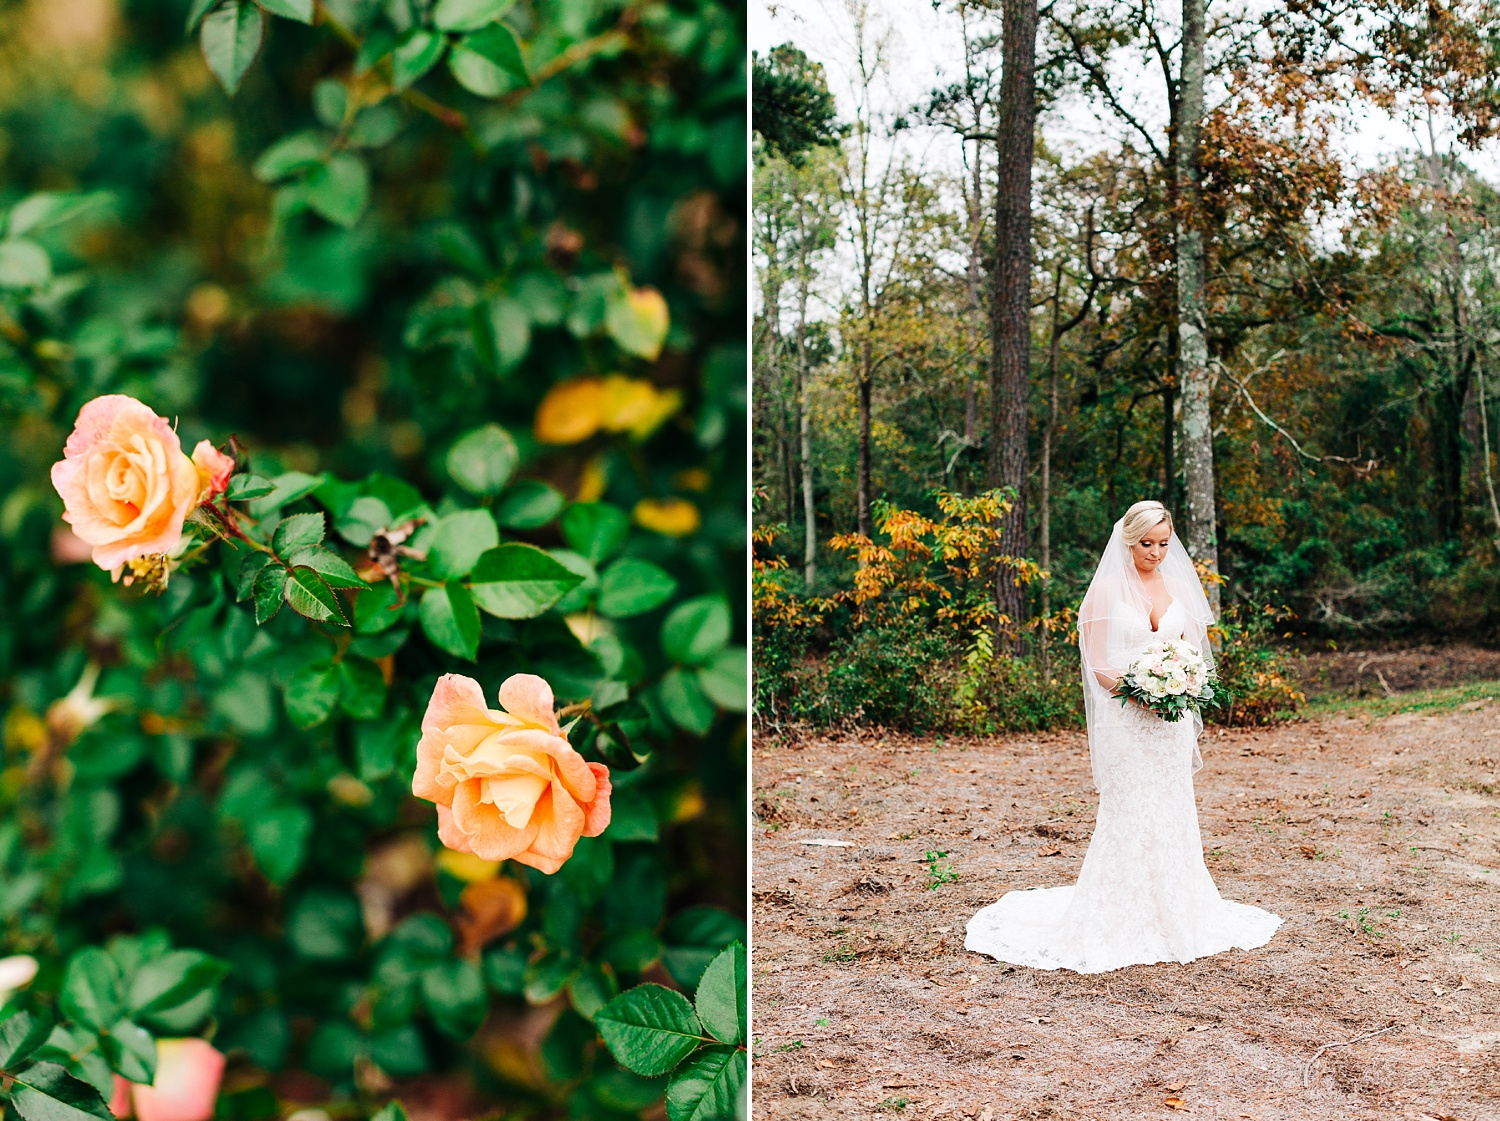 bridal portrait at cape fear vineyard by rachael bowman photography